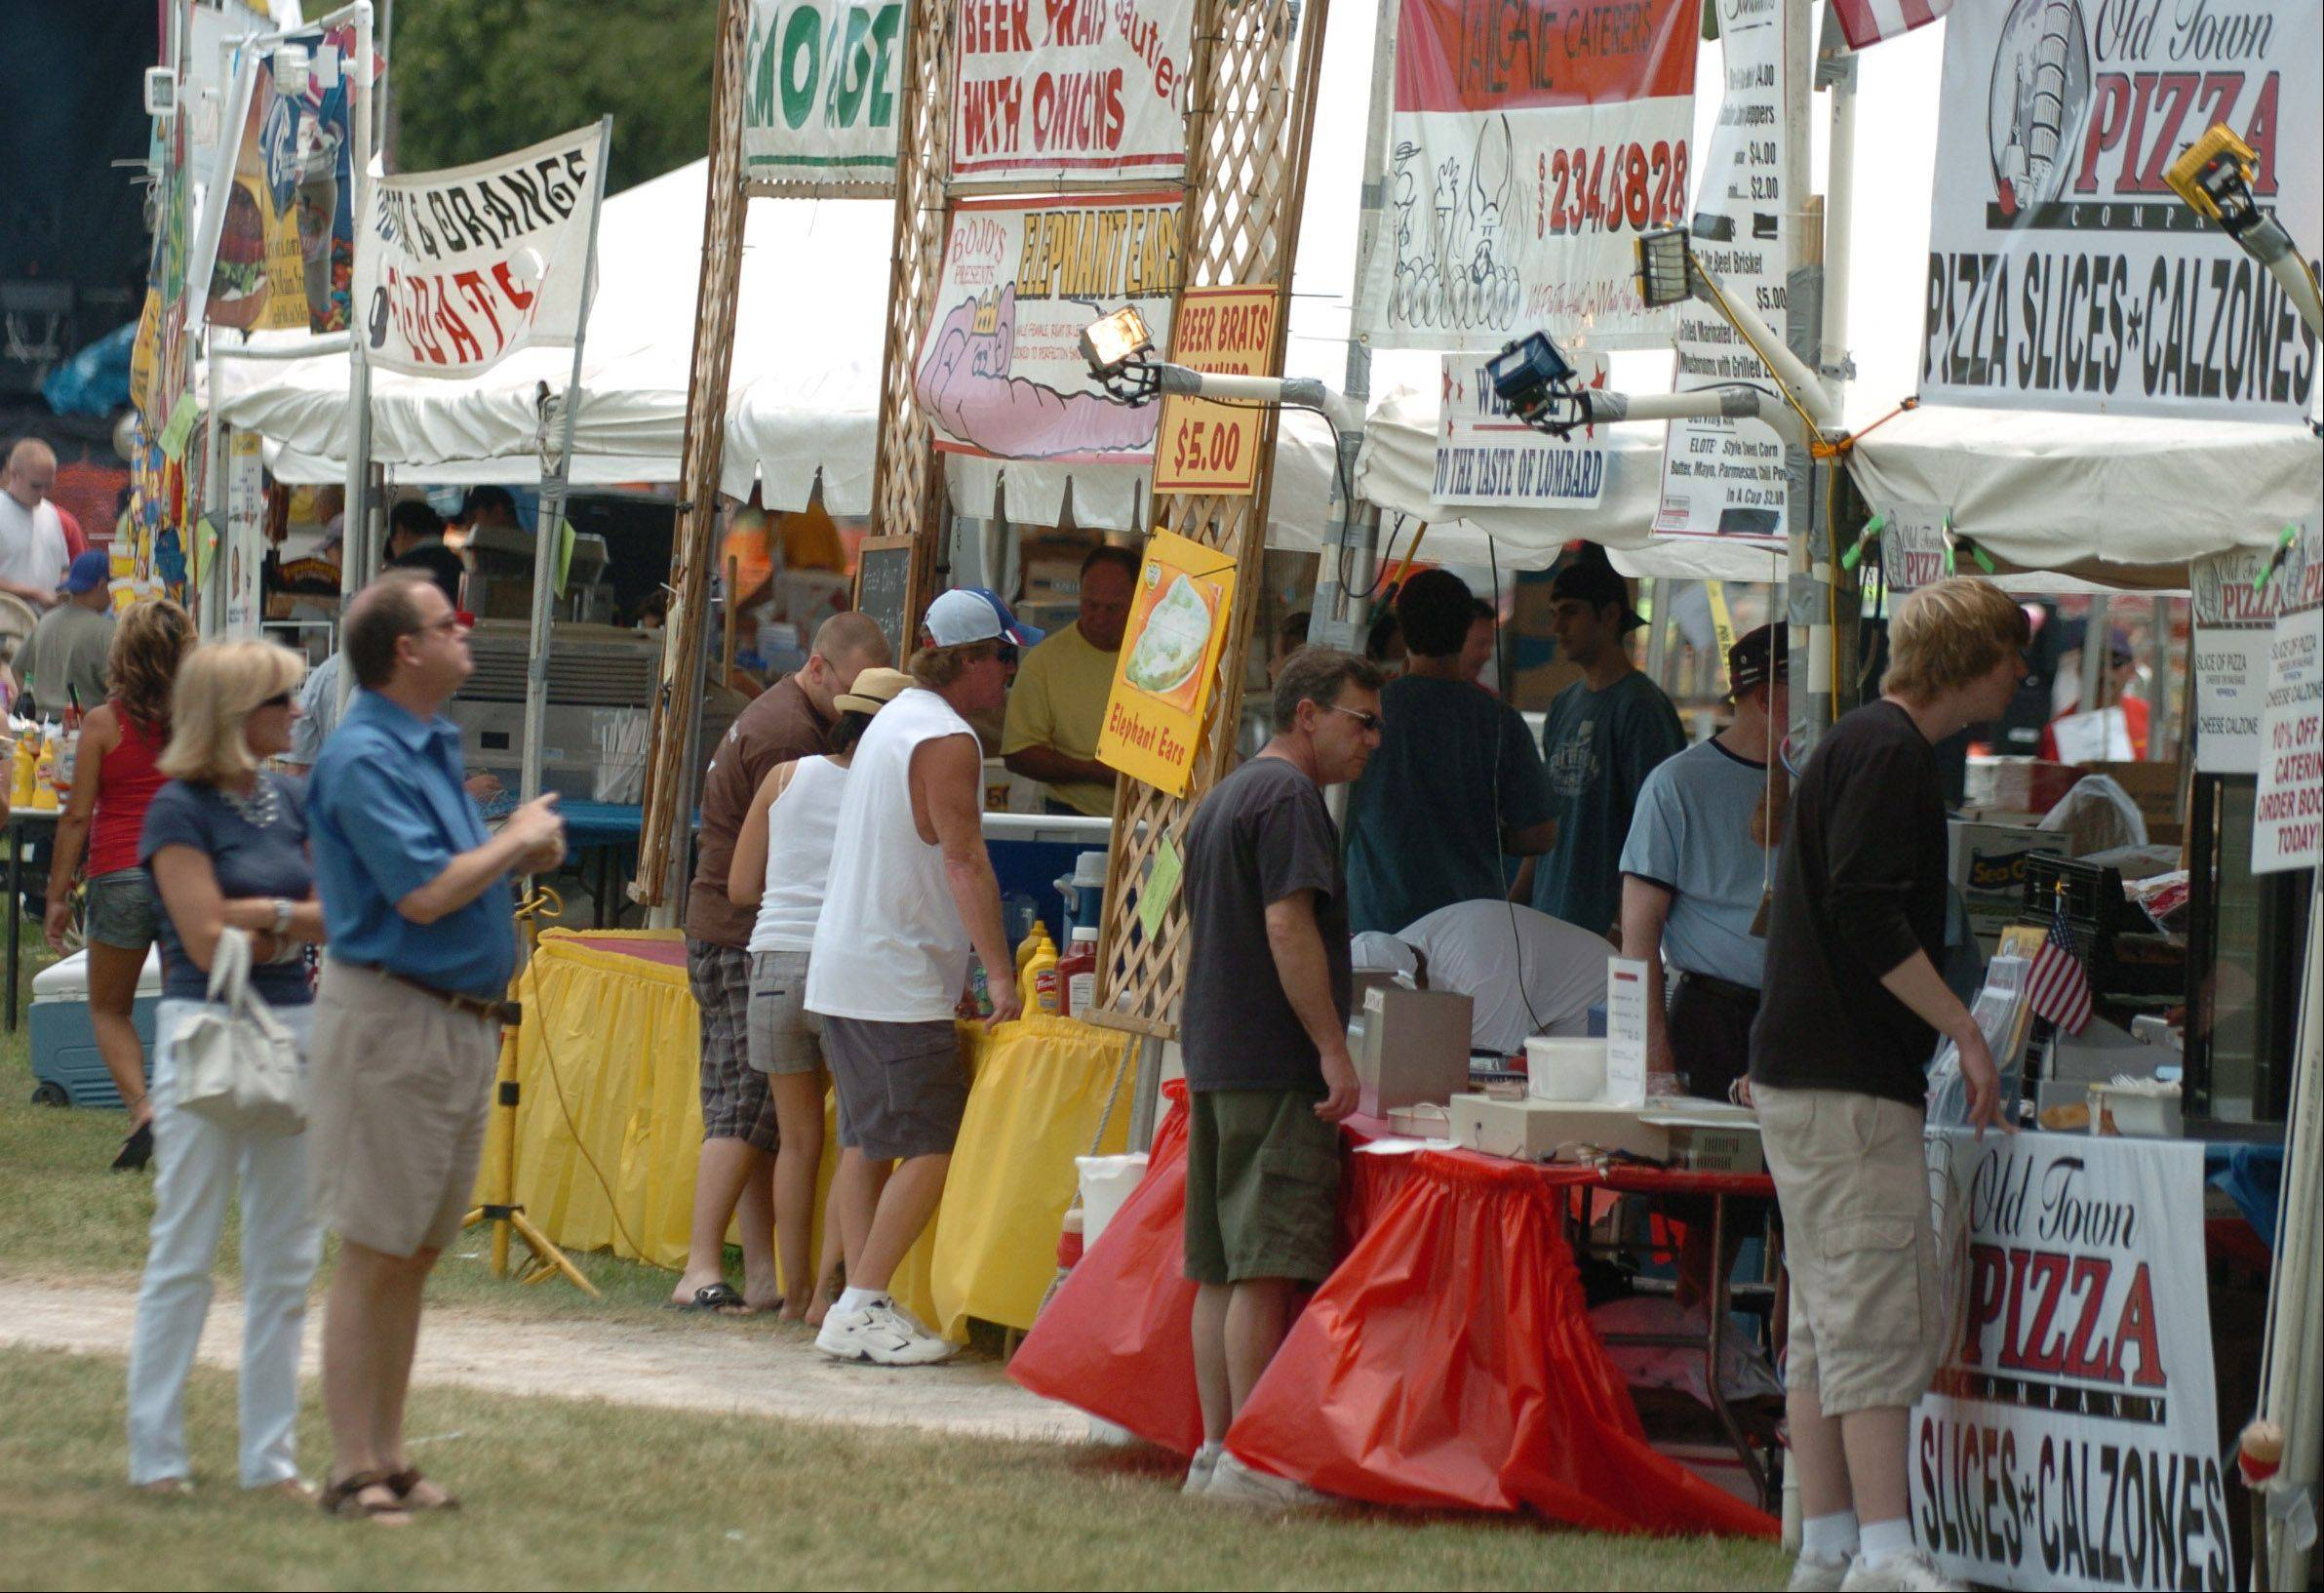 The 30th annual Taste of Lombard will offer food from 23 vendors, including local restaurants Giagnorio's Pizza, Ellyn's and Salt Creek BBQ.